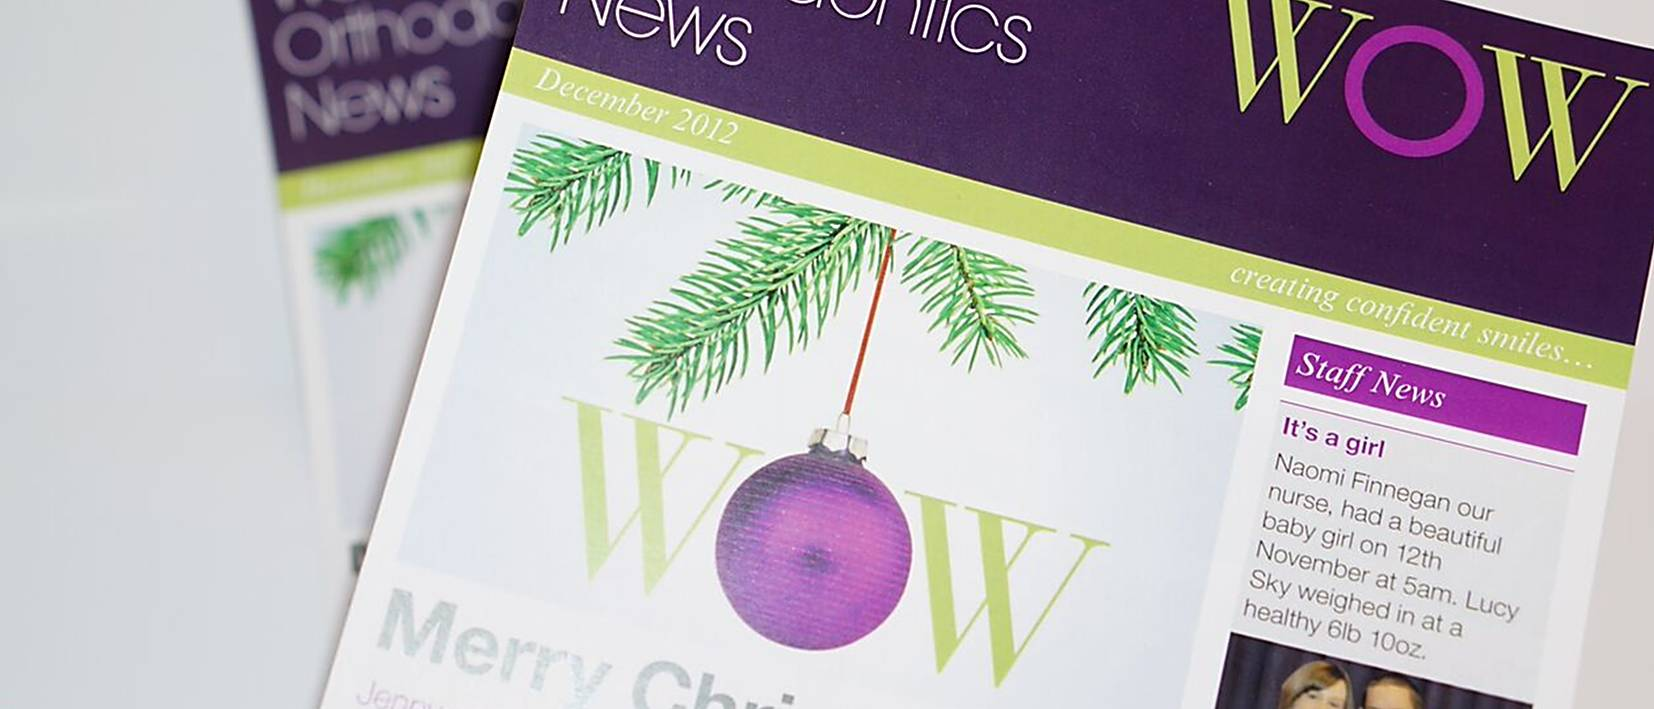 wow client news christmas